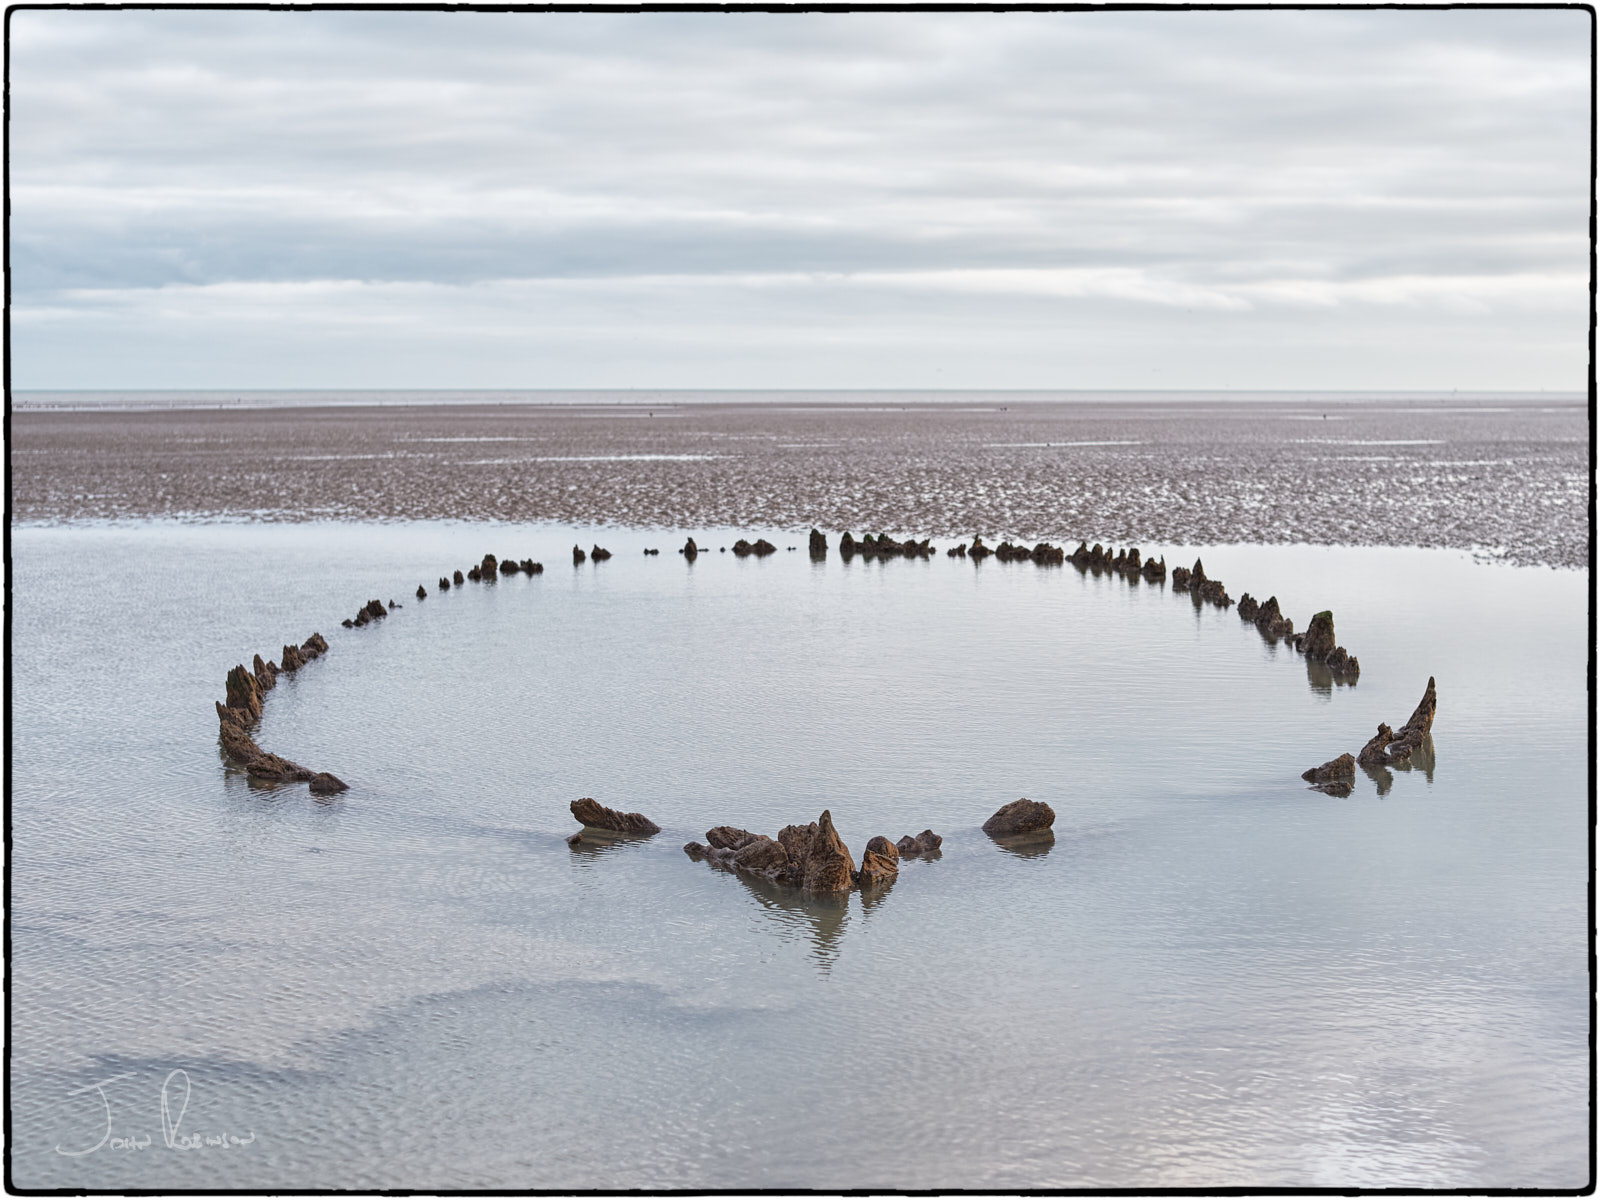 Ancient Wreck, Sandwich Bay, Kent